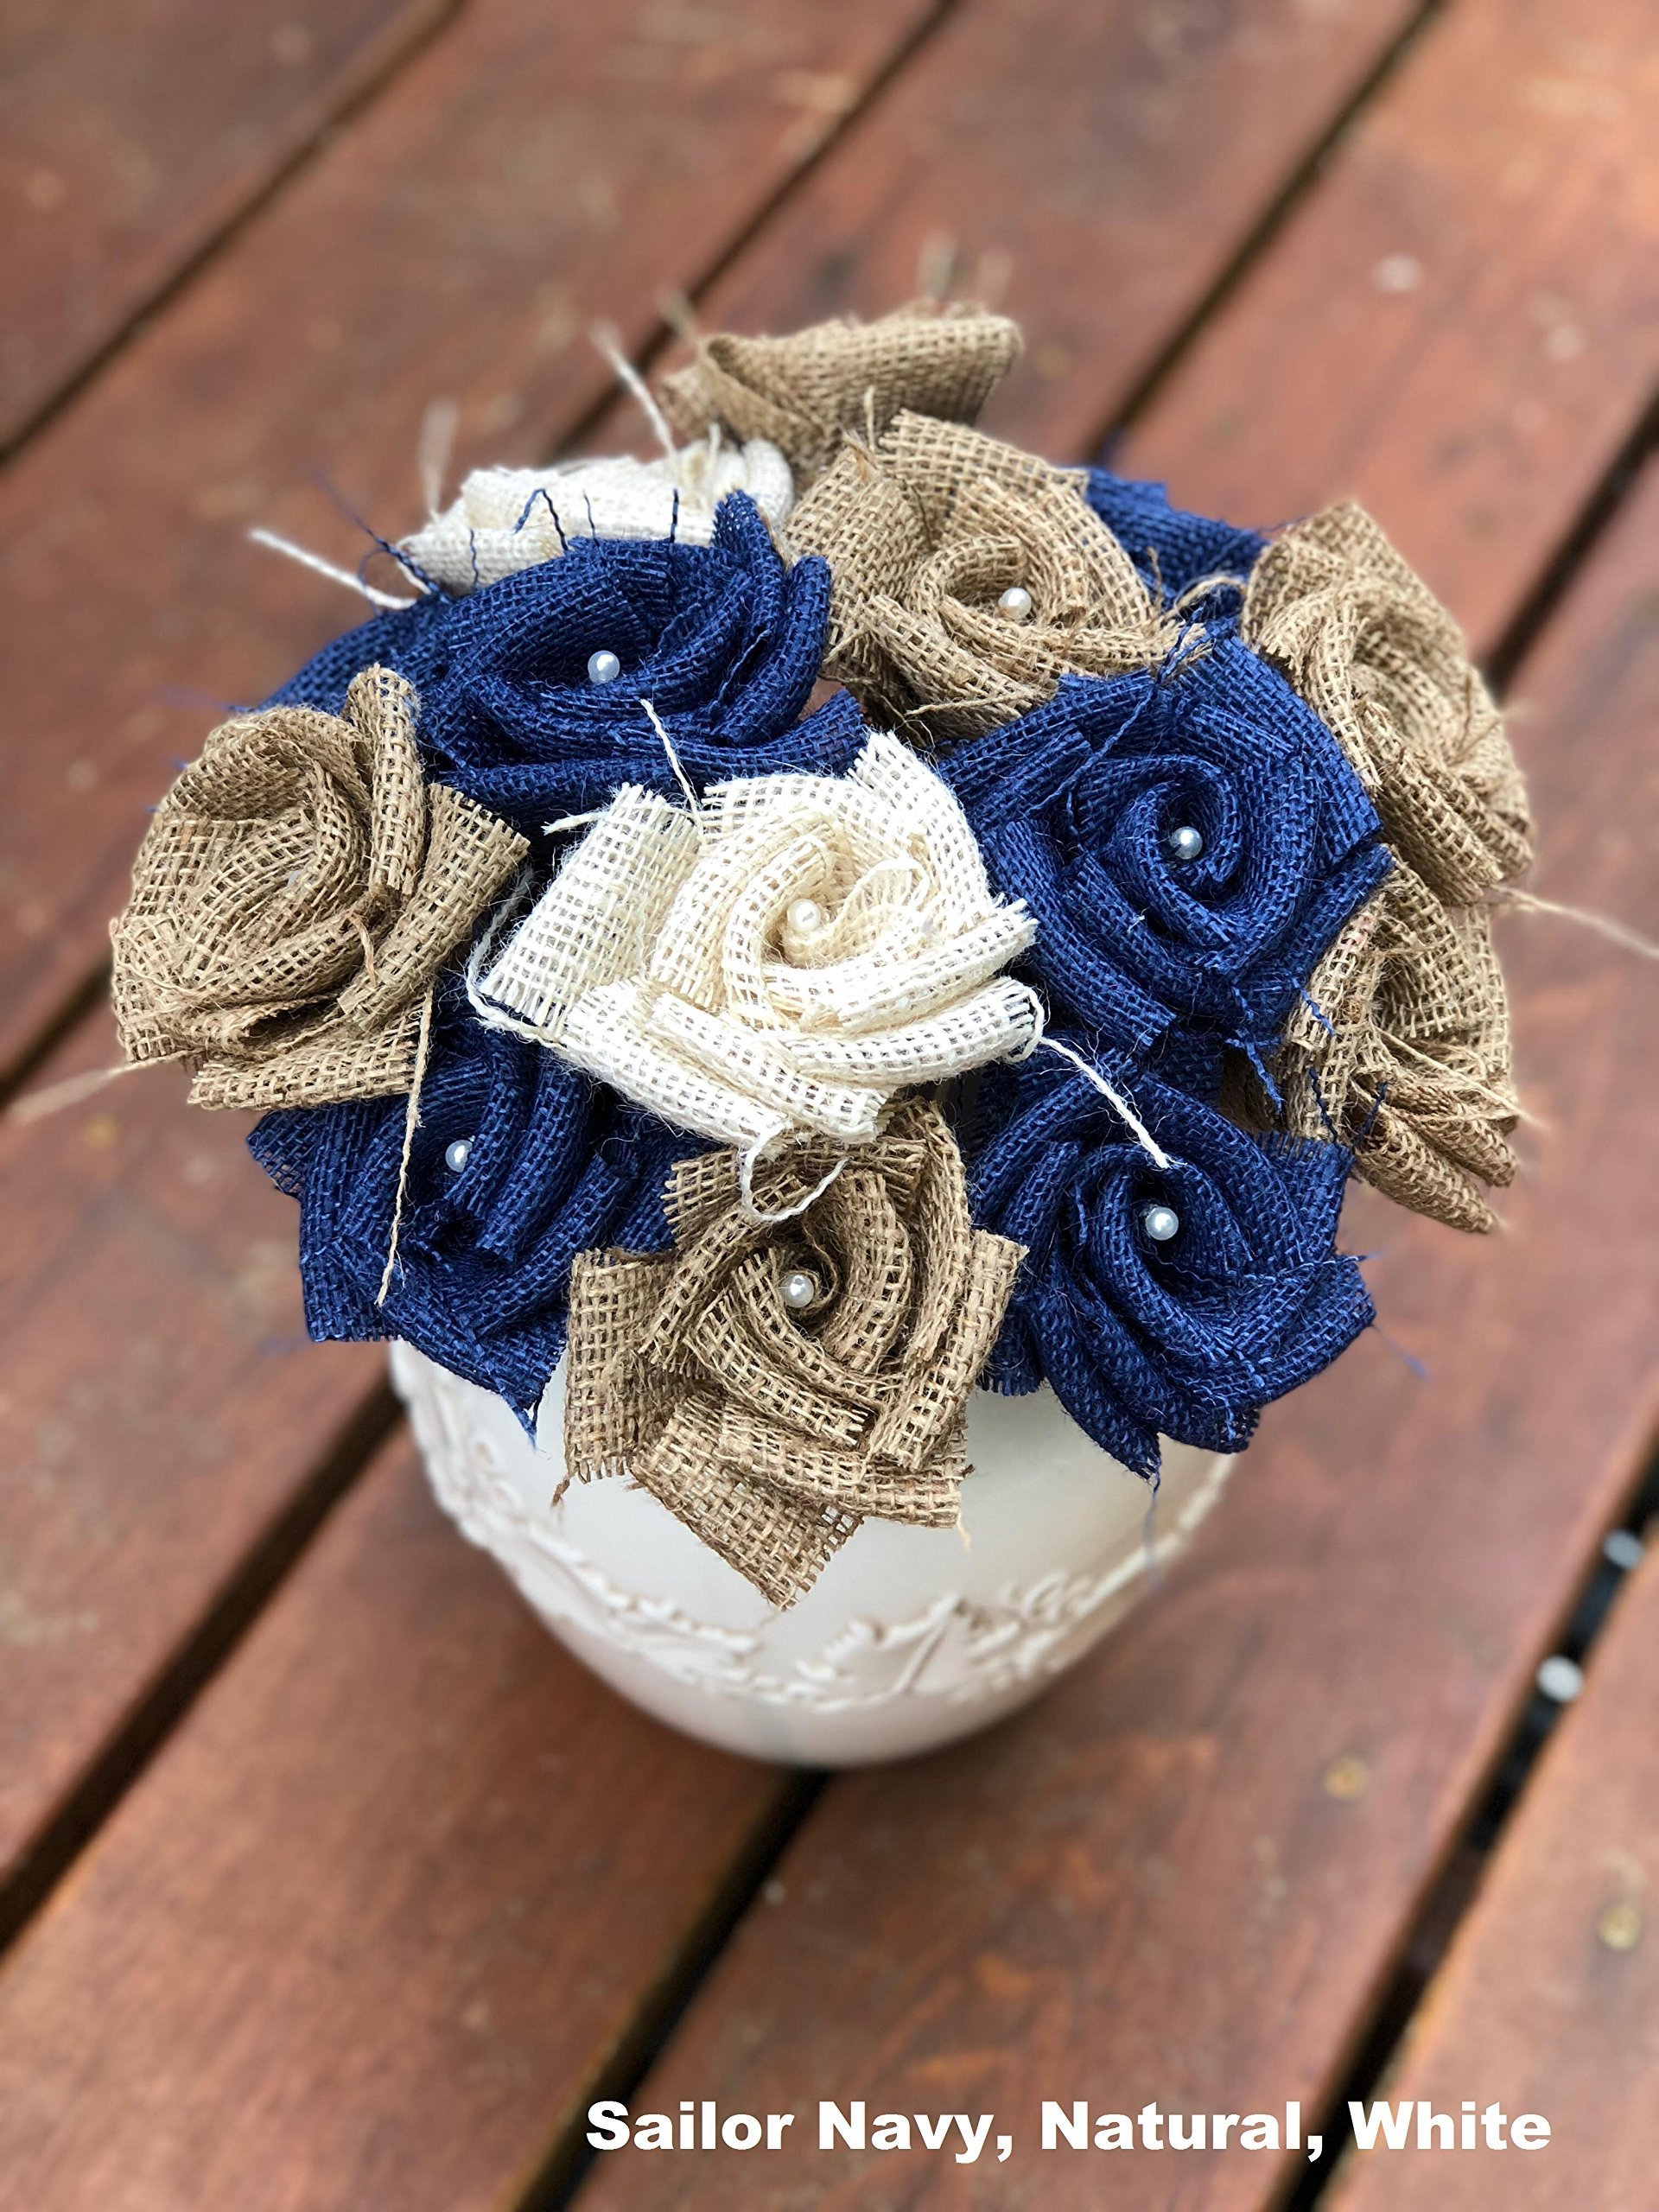 silk flower arrangements burlap flowers with stem 4 navy, 4 white, 4 natural (12 total) burlap rose flowers with stem wedding decor flowers rustic bouquet with wooden stems